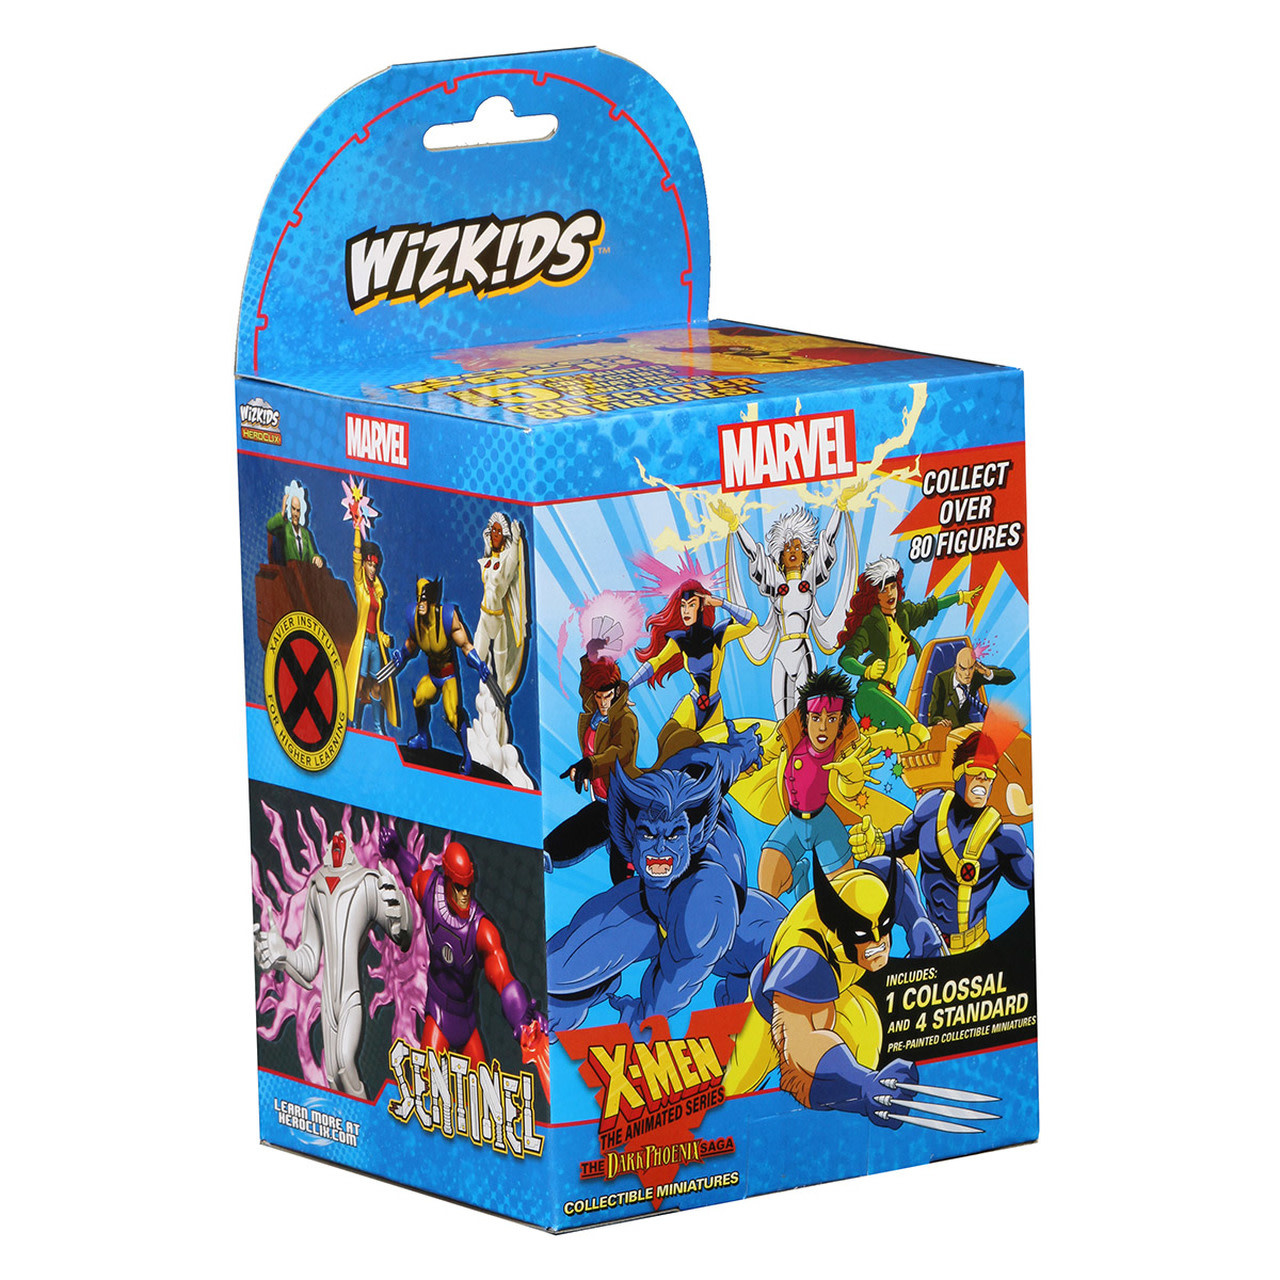 Wizkids Marvel Heroclix: X-men Animated, The Dark Phoenix Saga Booster